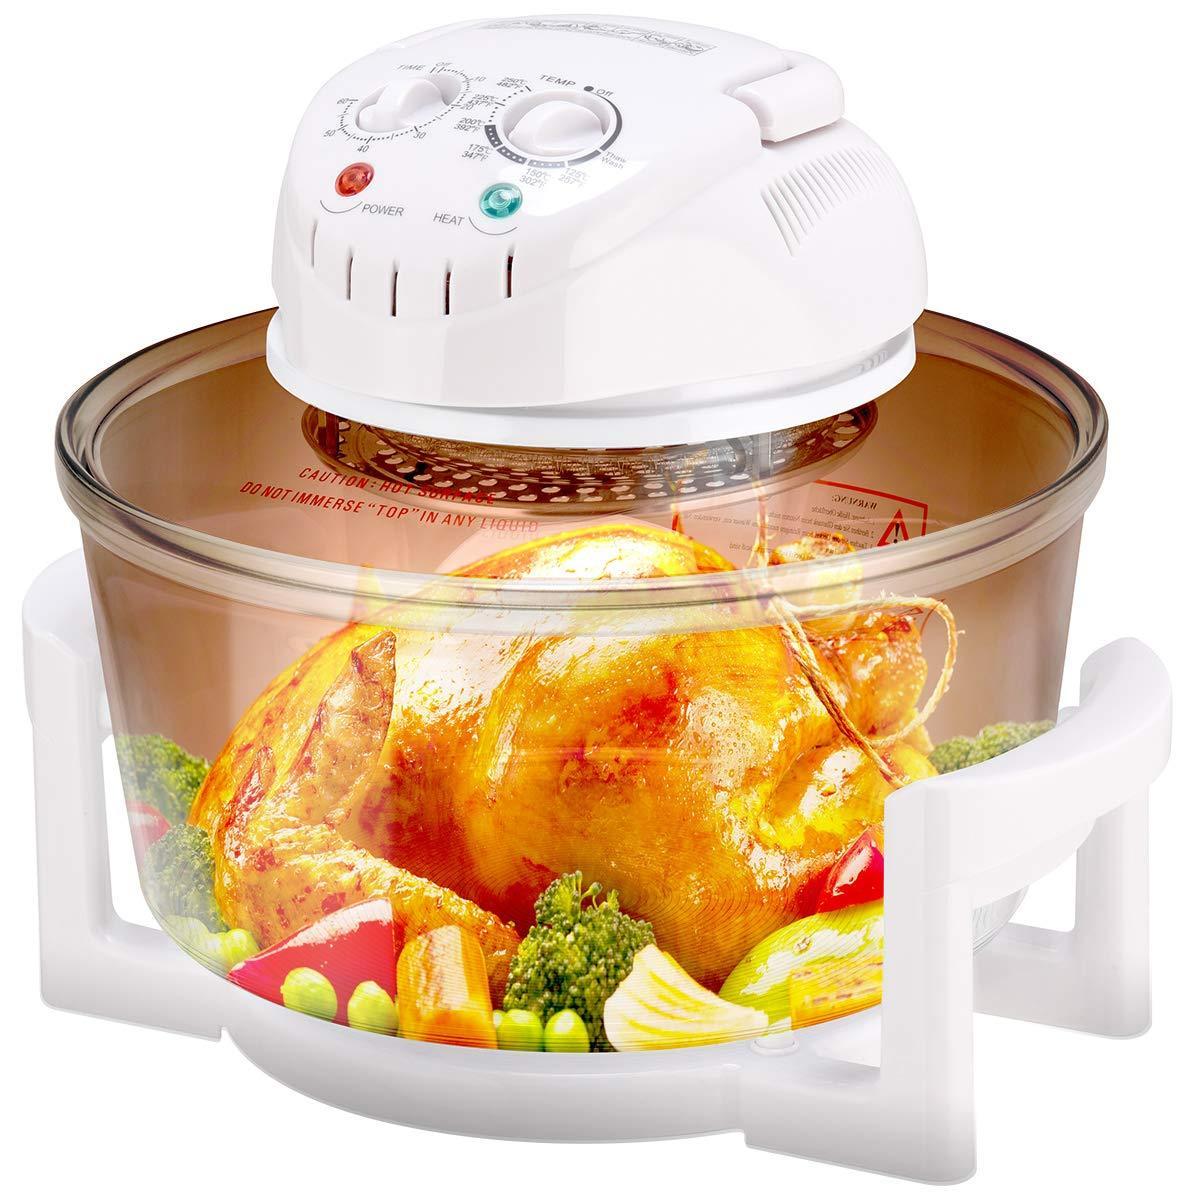 Infrared Halogen Convection Oven With Stainless Steel Extender Ring Oven Cooker Kitchen Countertops Convection Oven Cooking